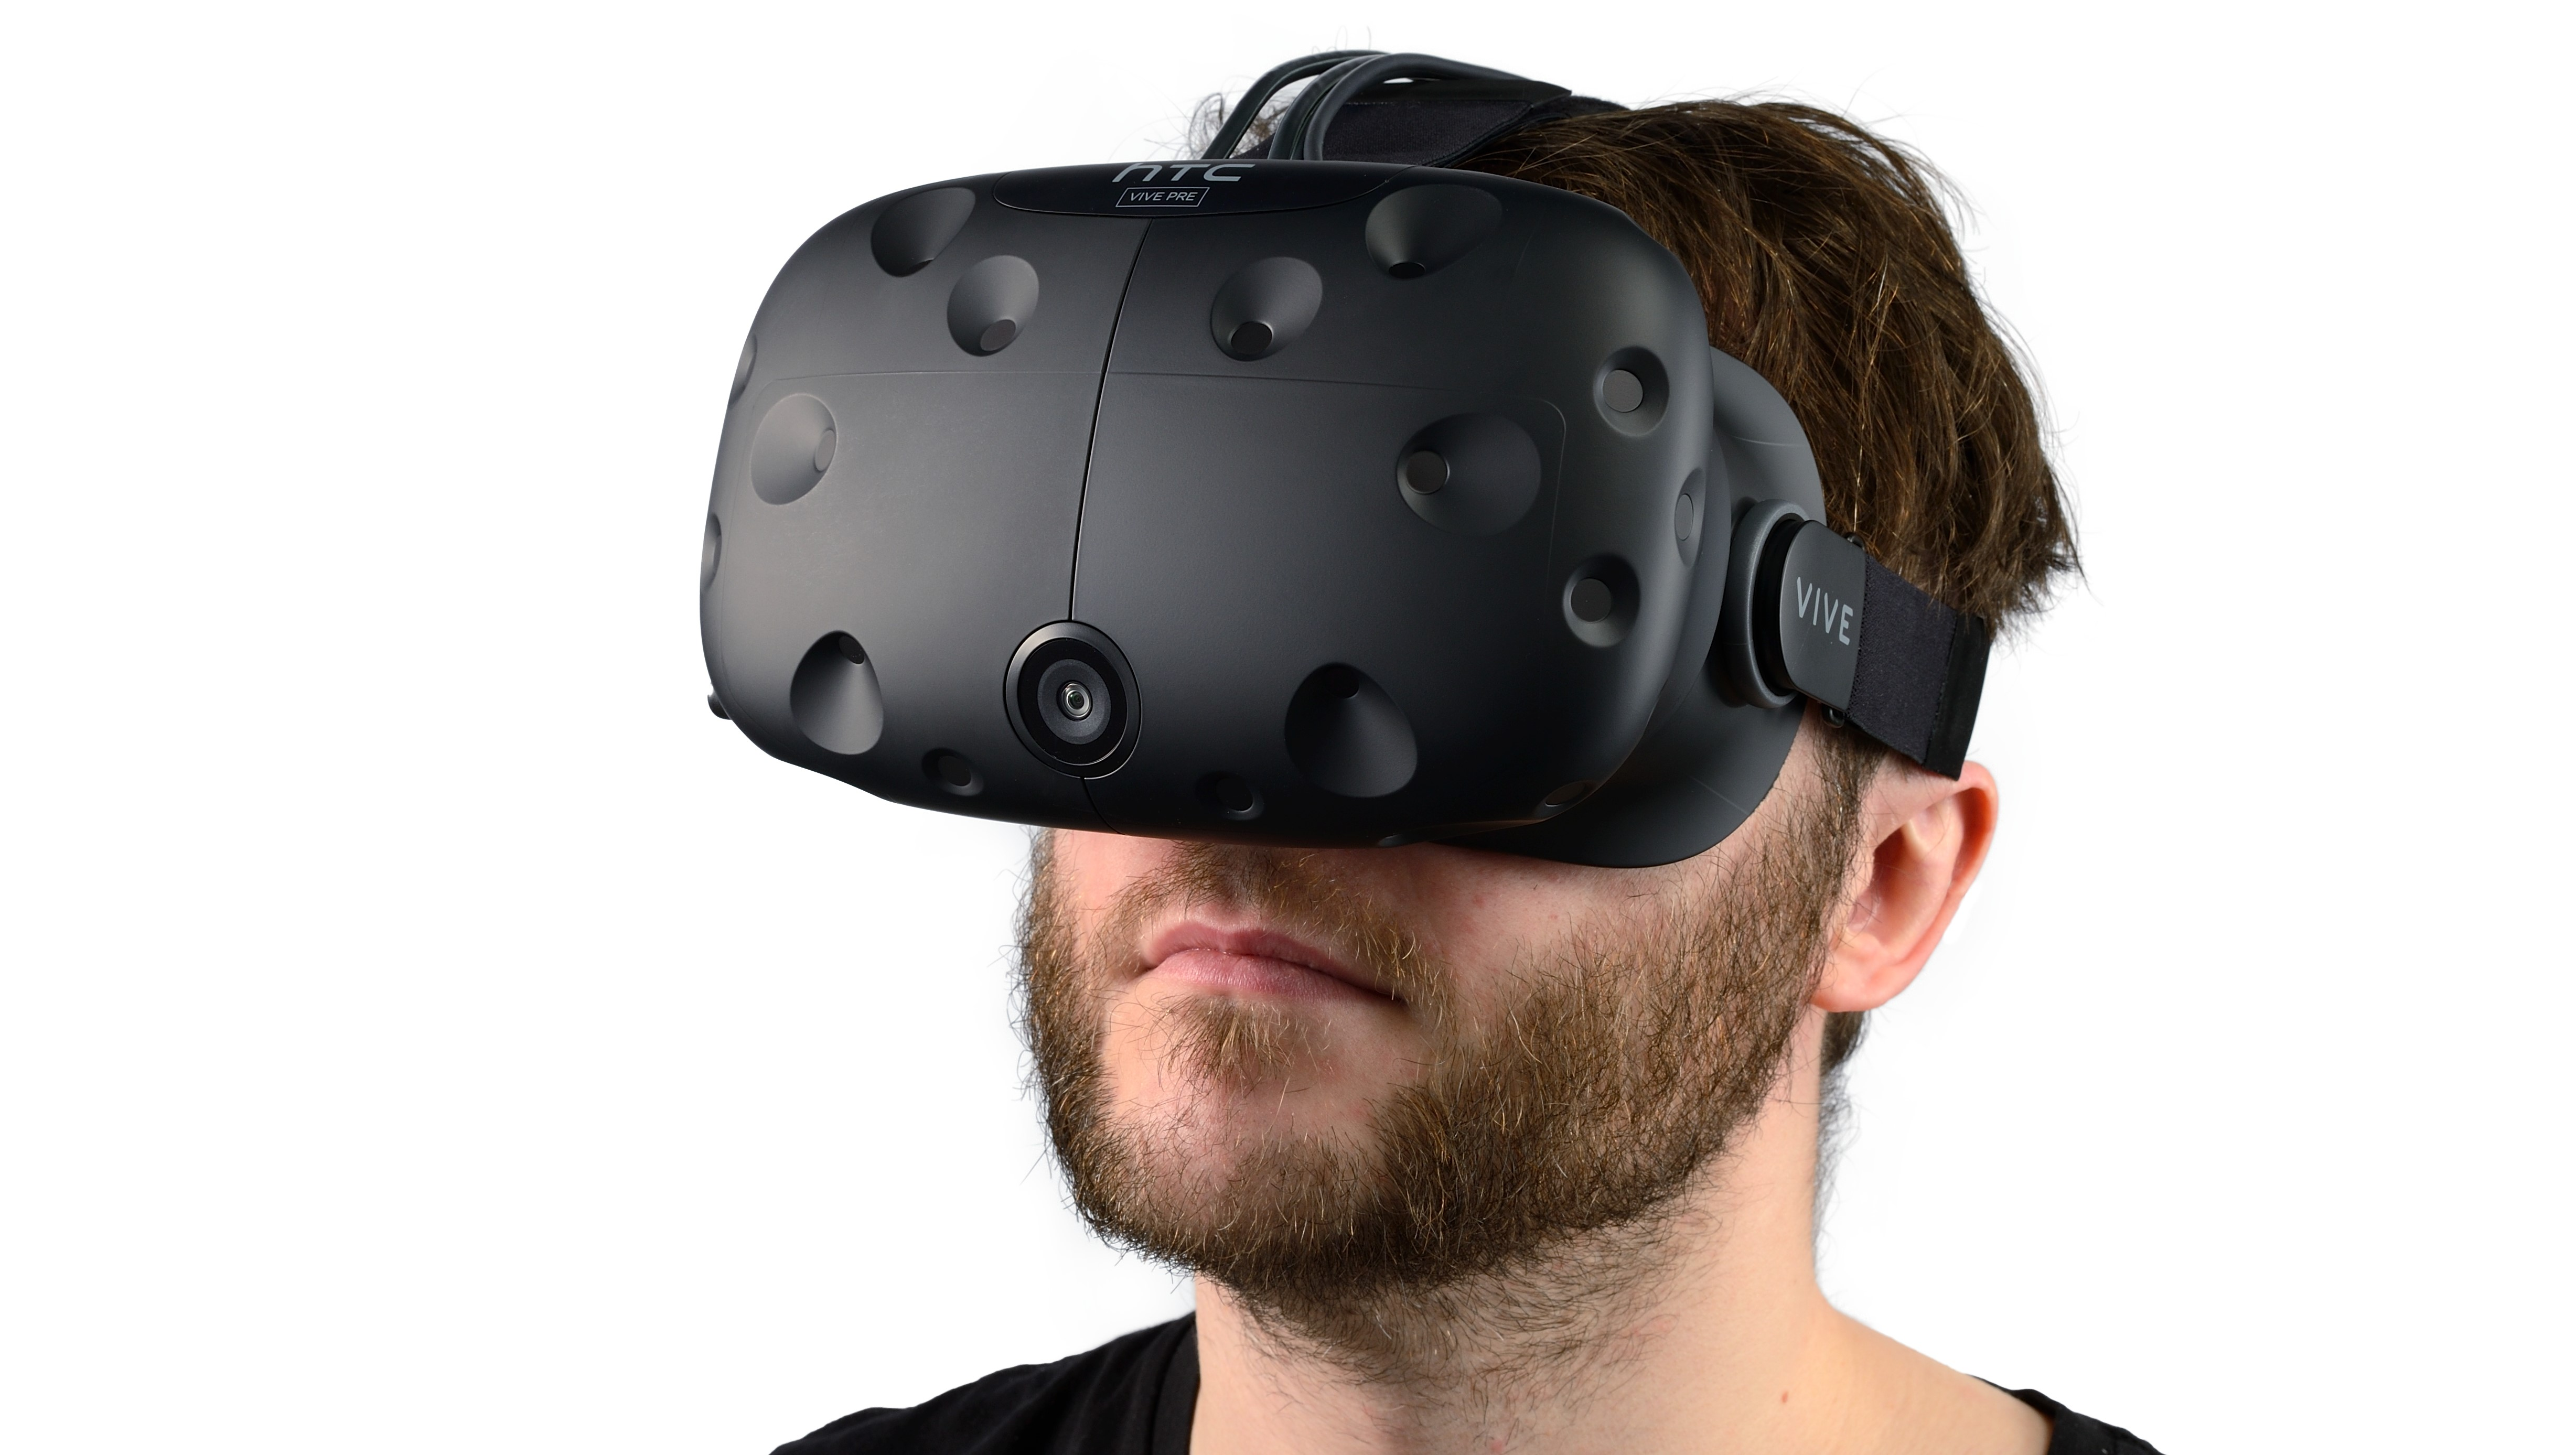 GDC 2016: SteamVR Desktop Theater mode allows you to play your